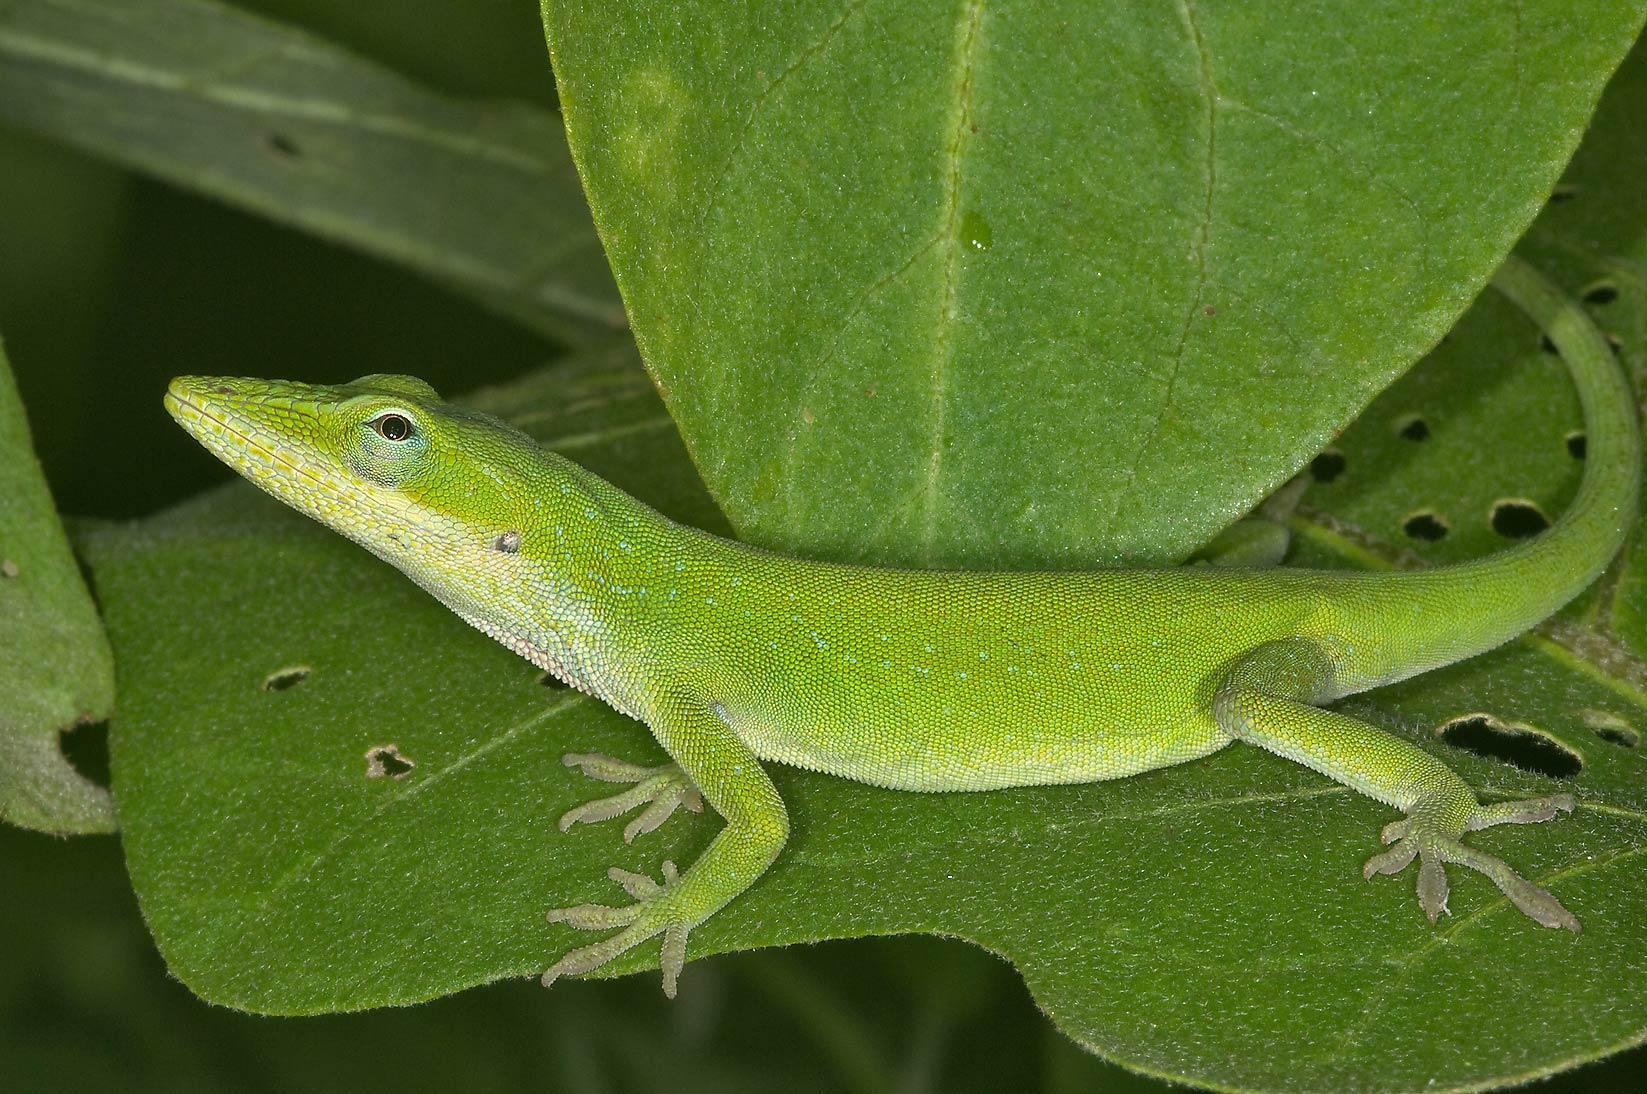 Green anole (Anolis carolinensis) on eggplant in...M University. College Station, Texas